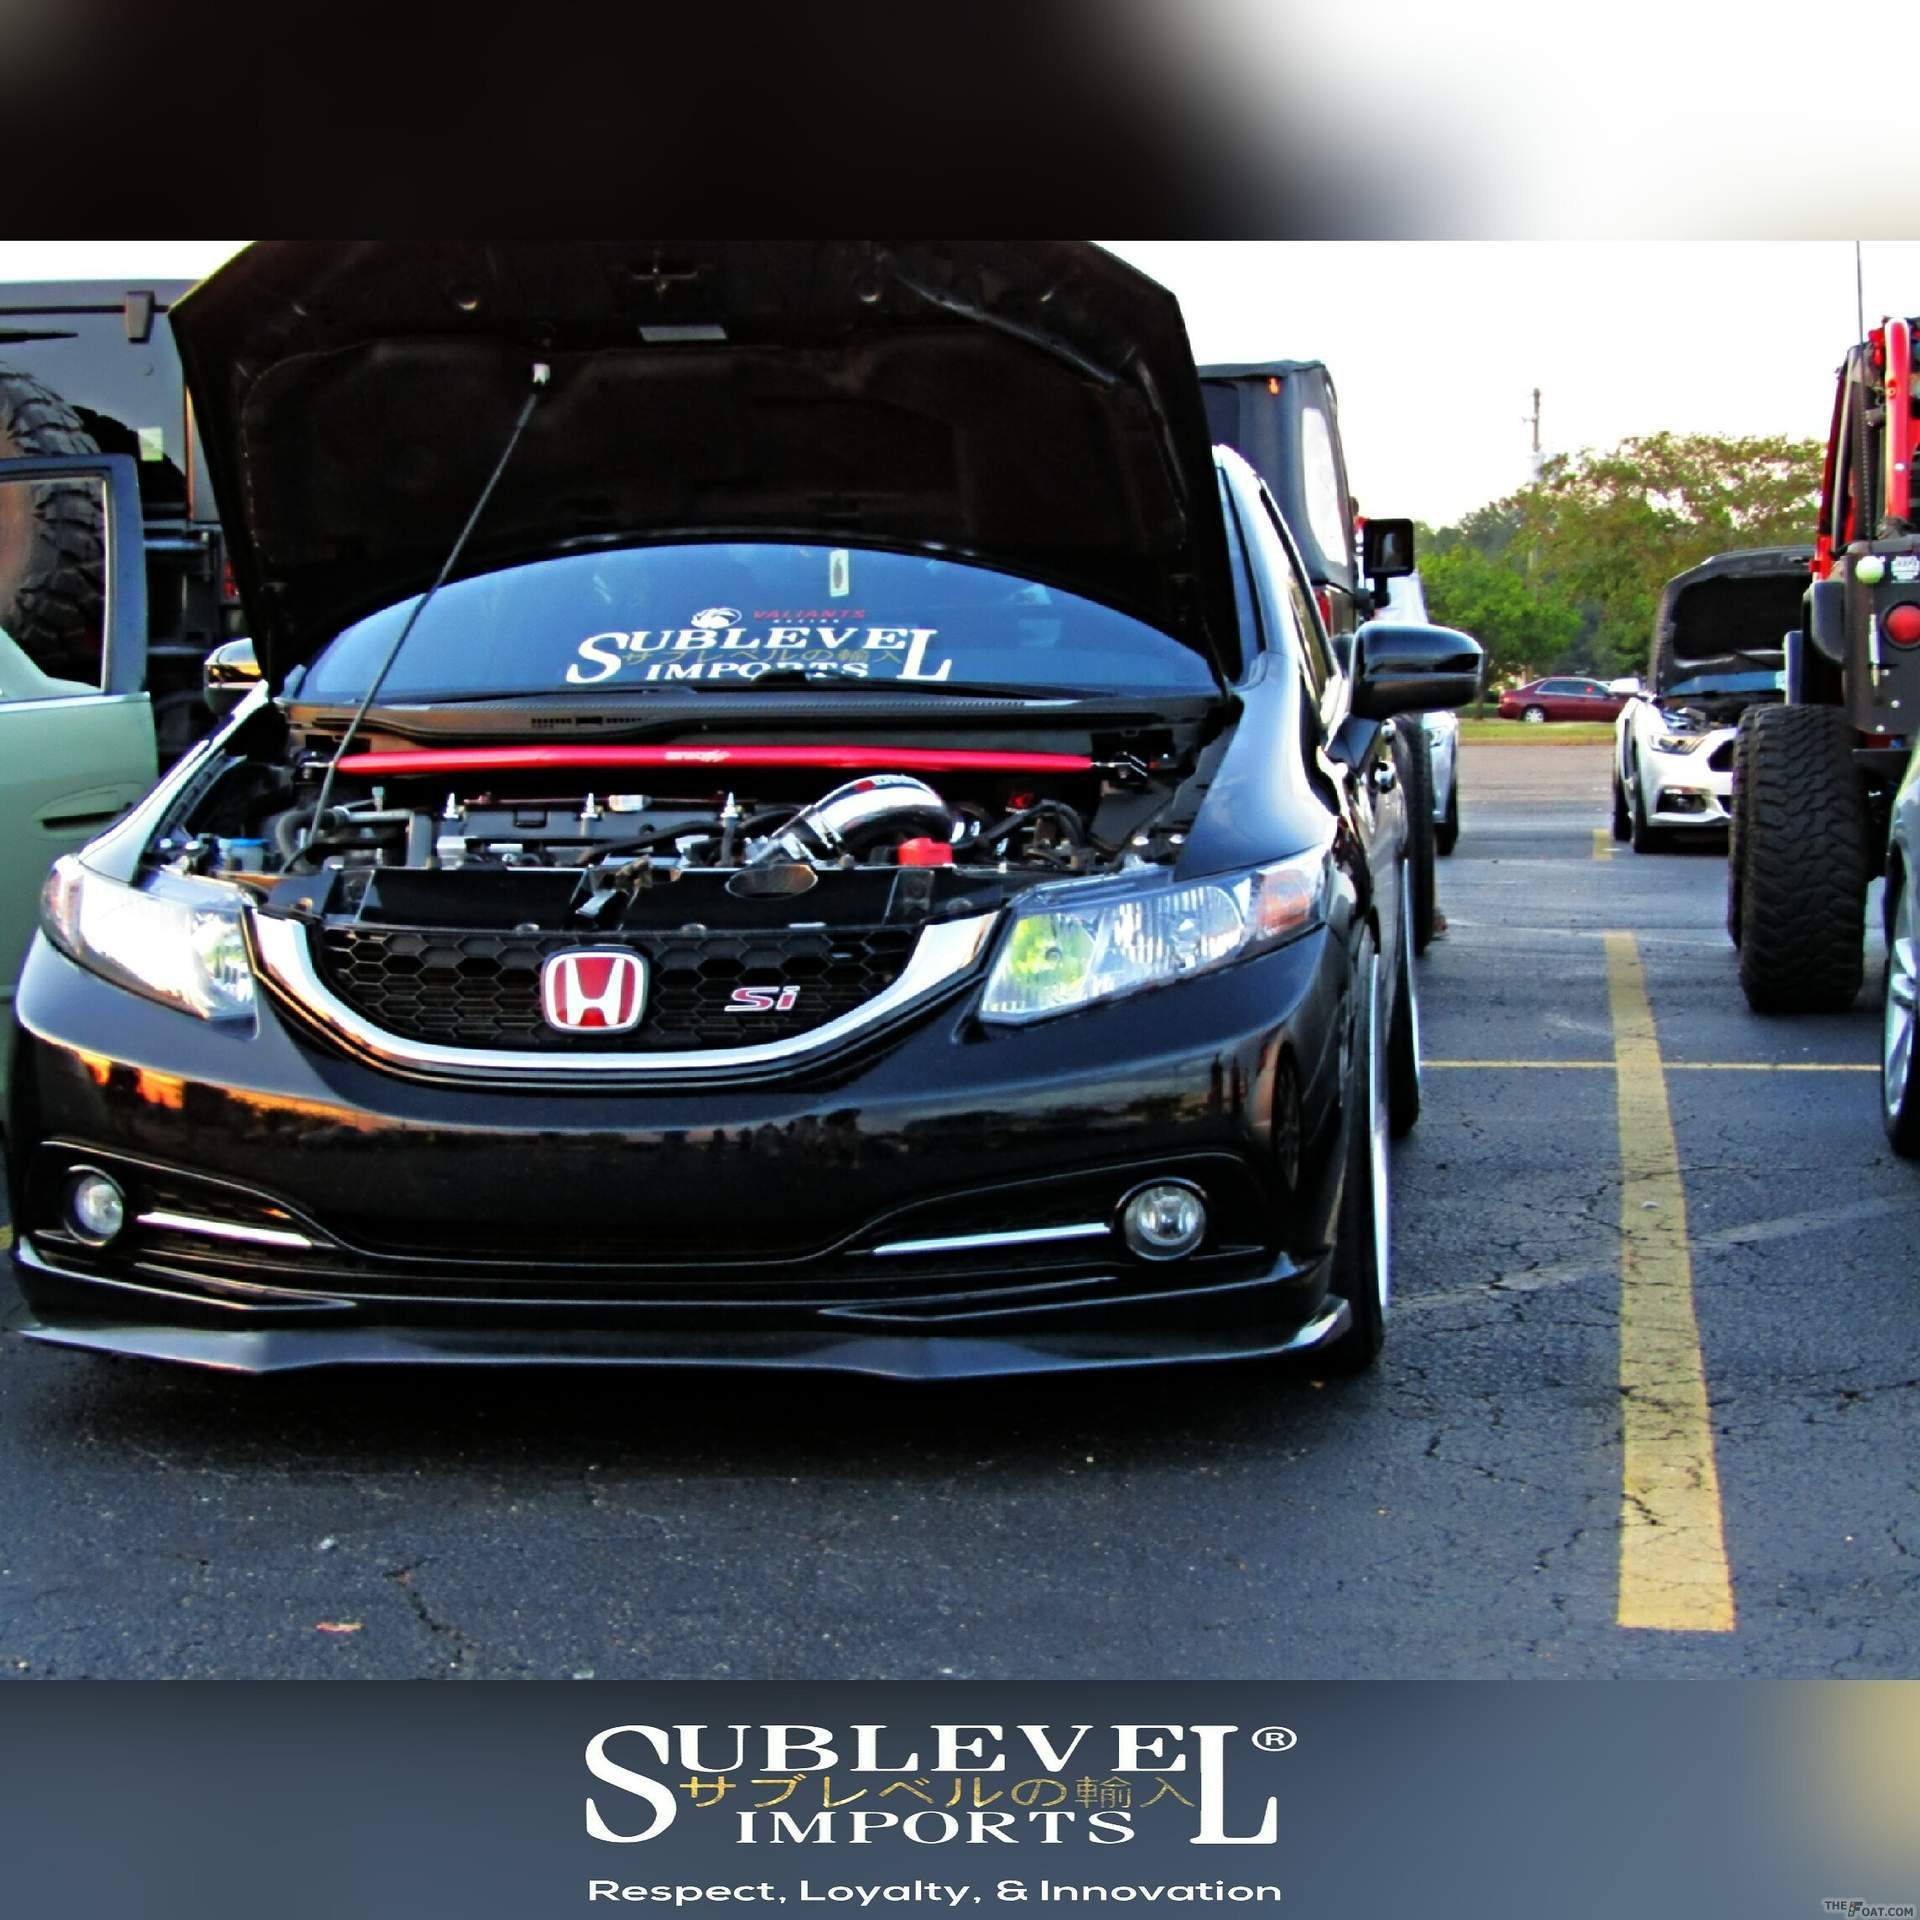 2014 Honda Civic SI Sublevel Imports